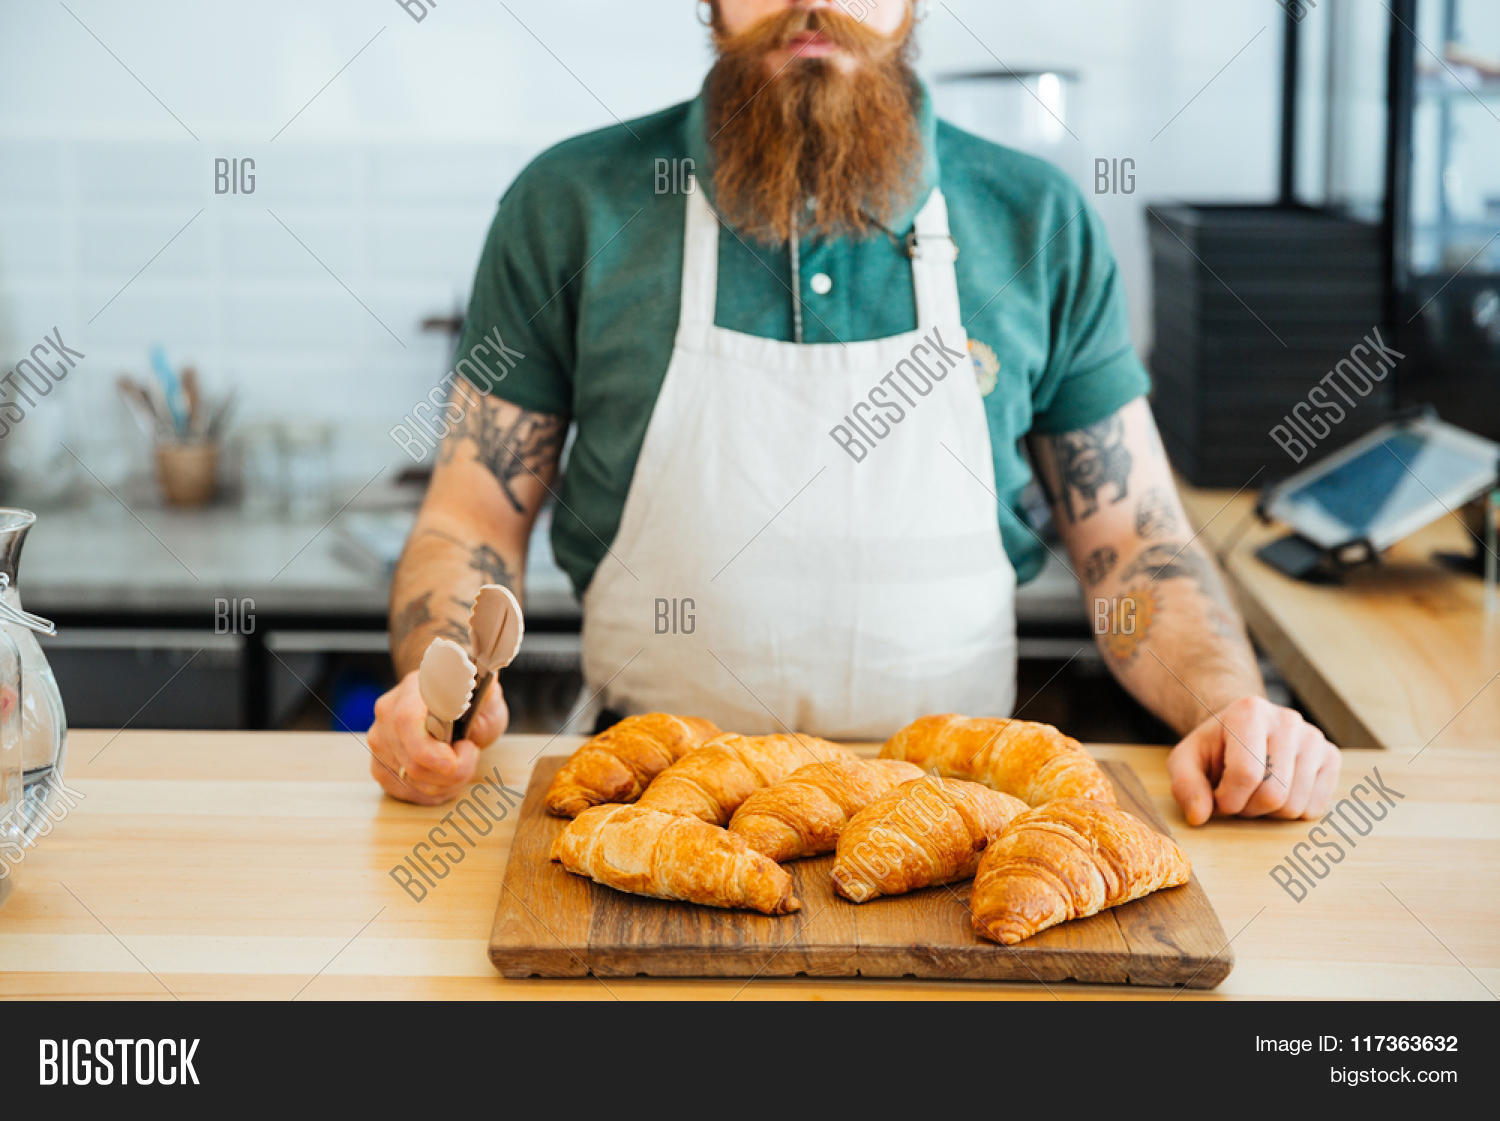 White apron cafe - Closeup Of Bearded Man In White Apron With Tattoo On Hands Standing In Cafe And Holding